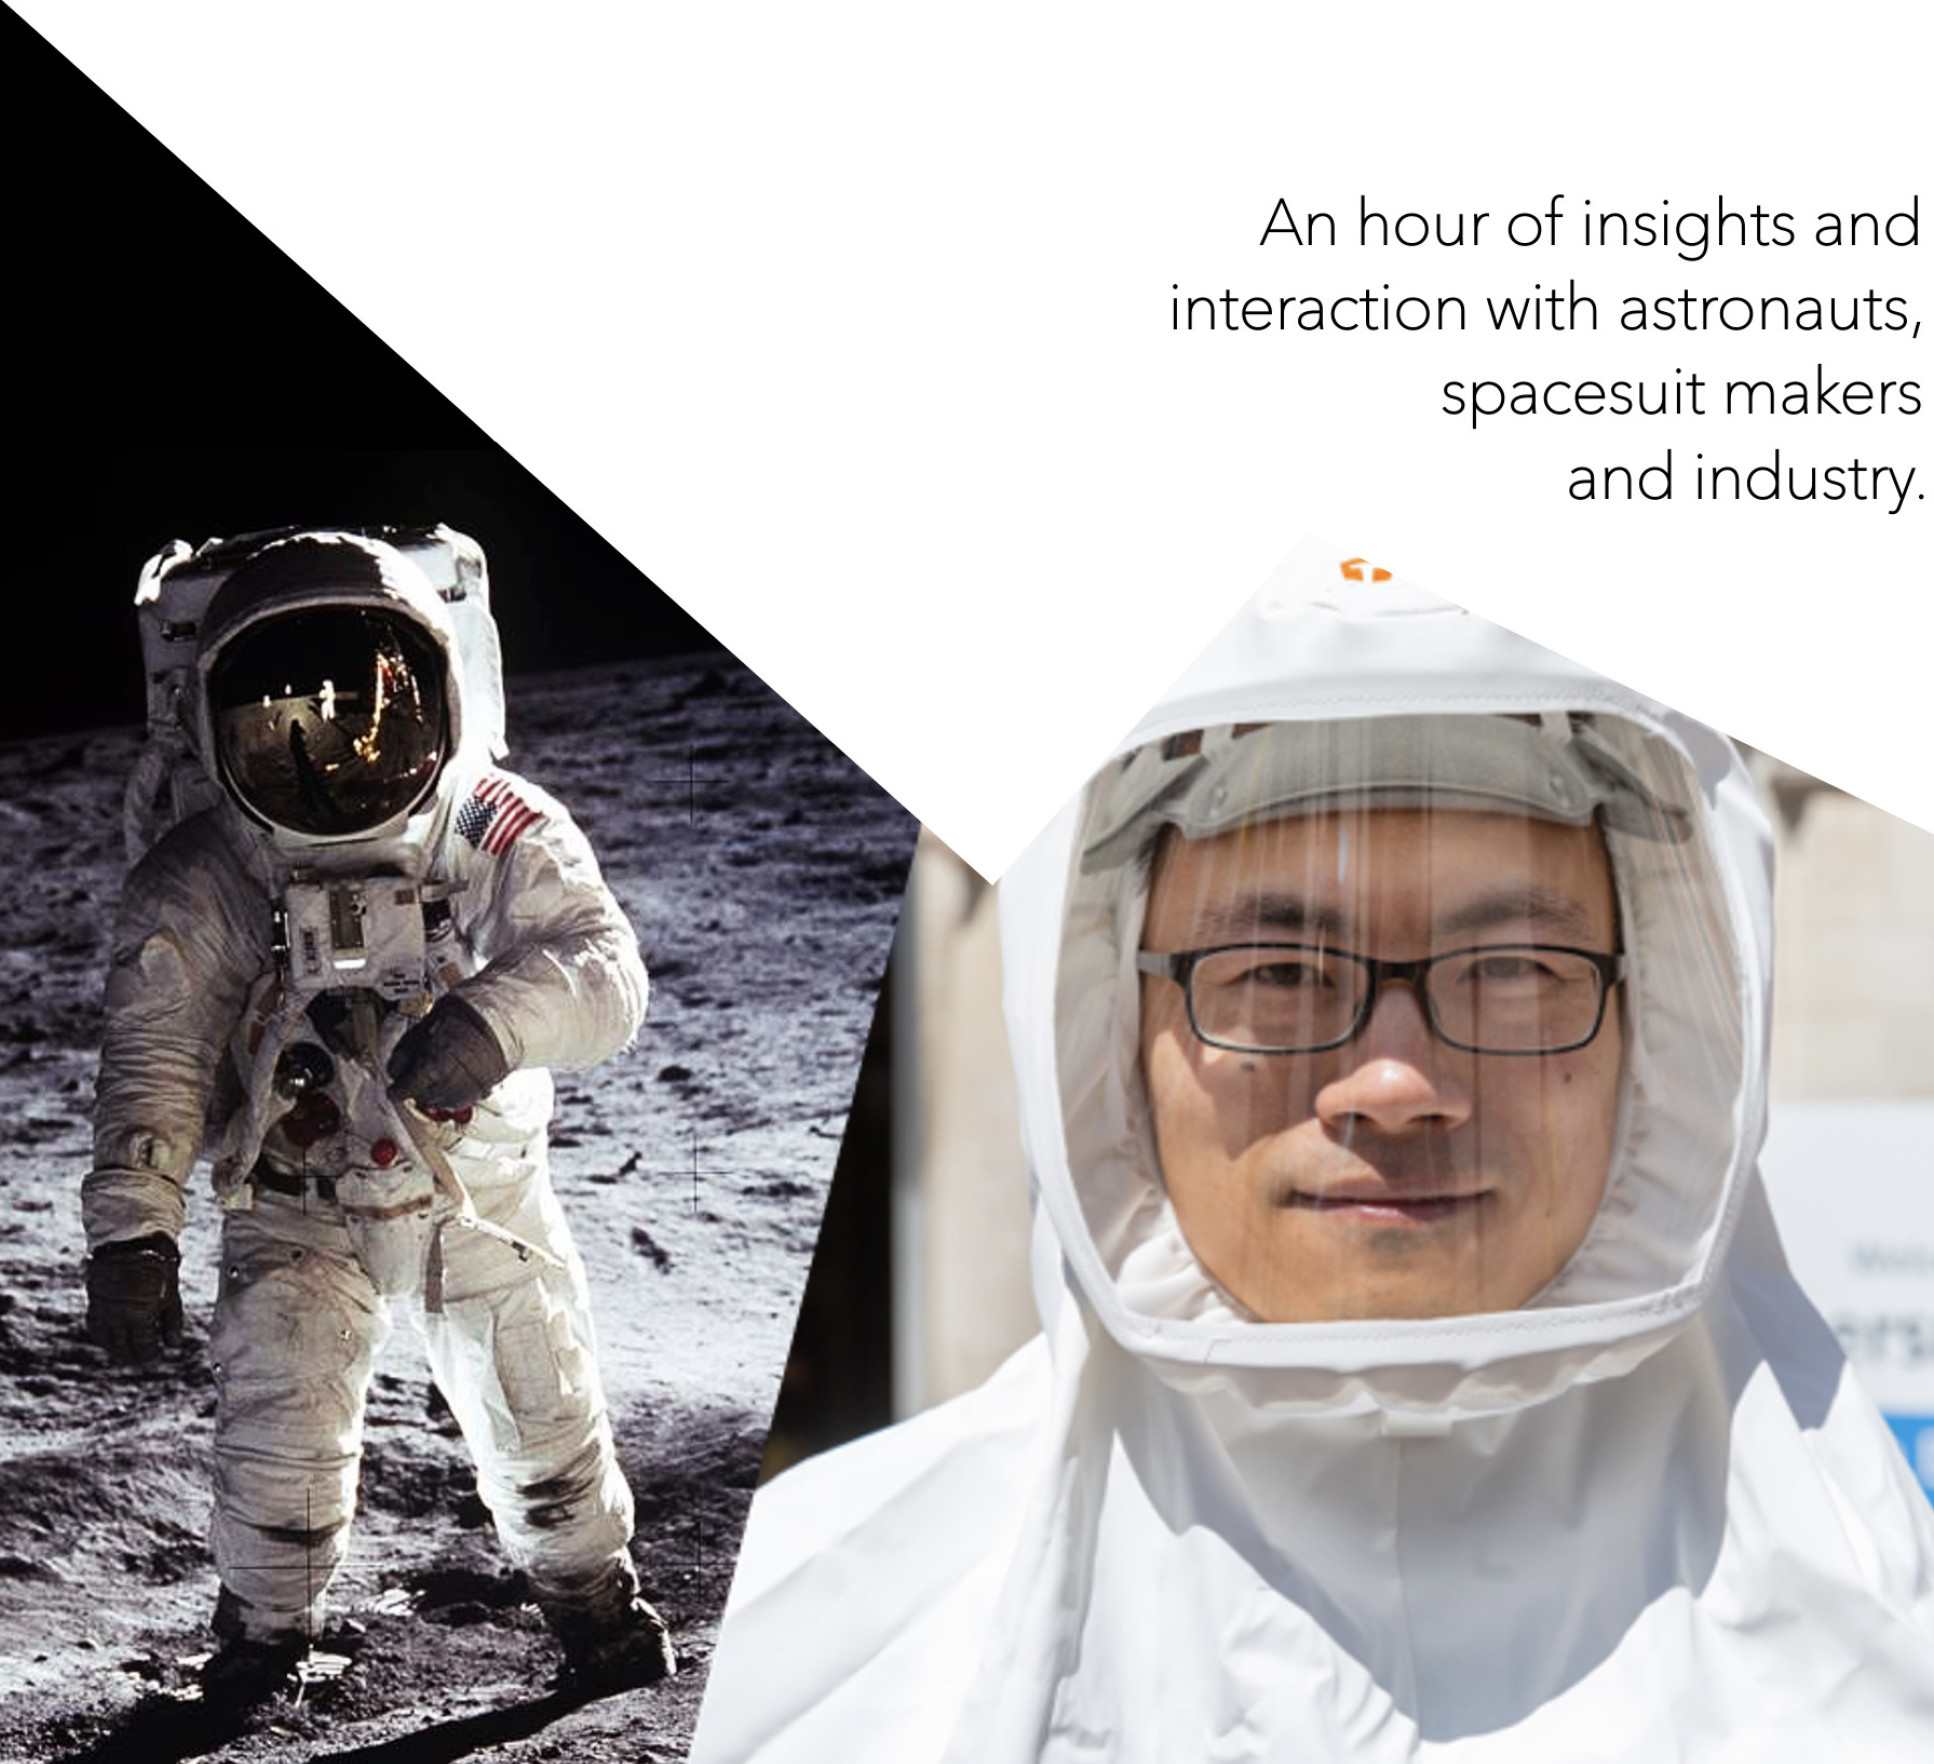 An hour of insights and interaction with astronauts, spacesuit makers and industry